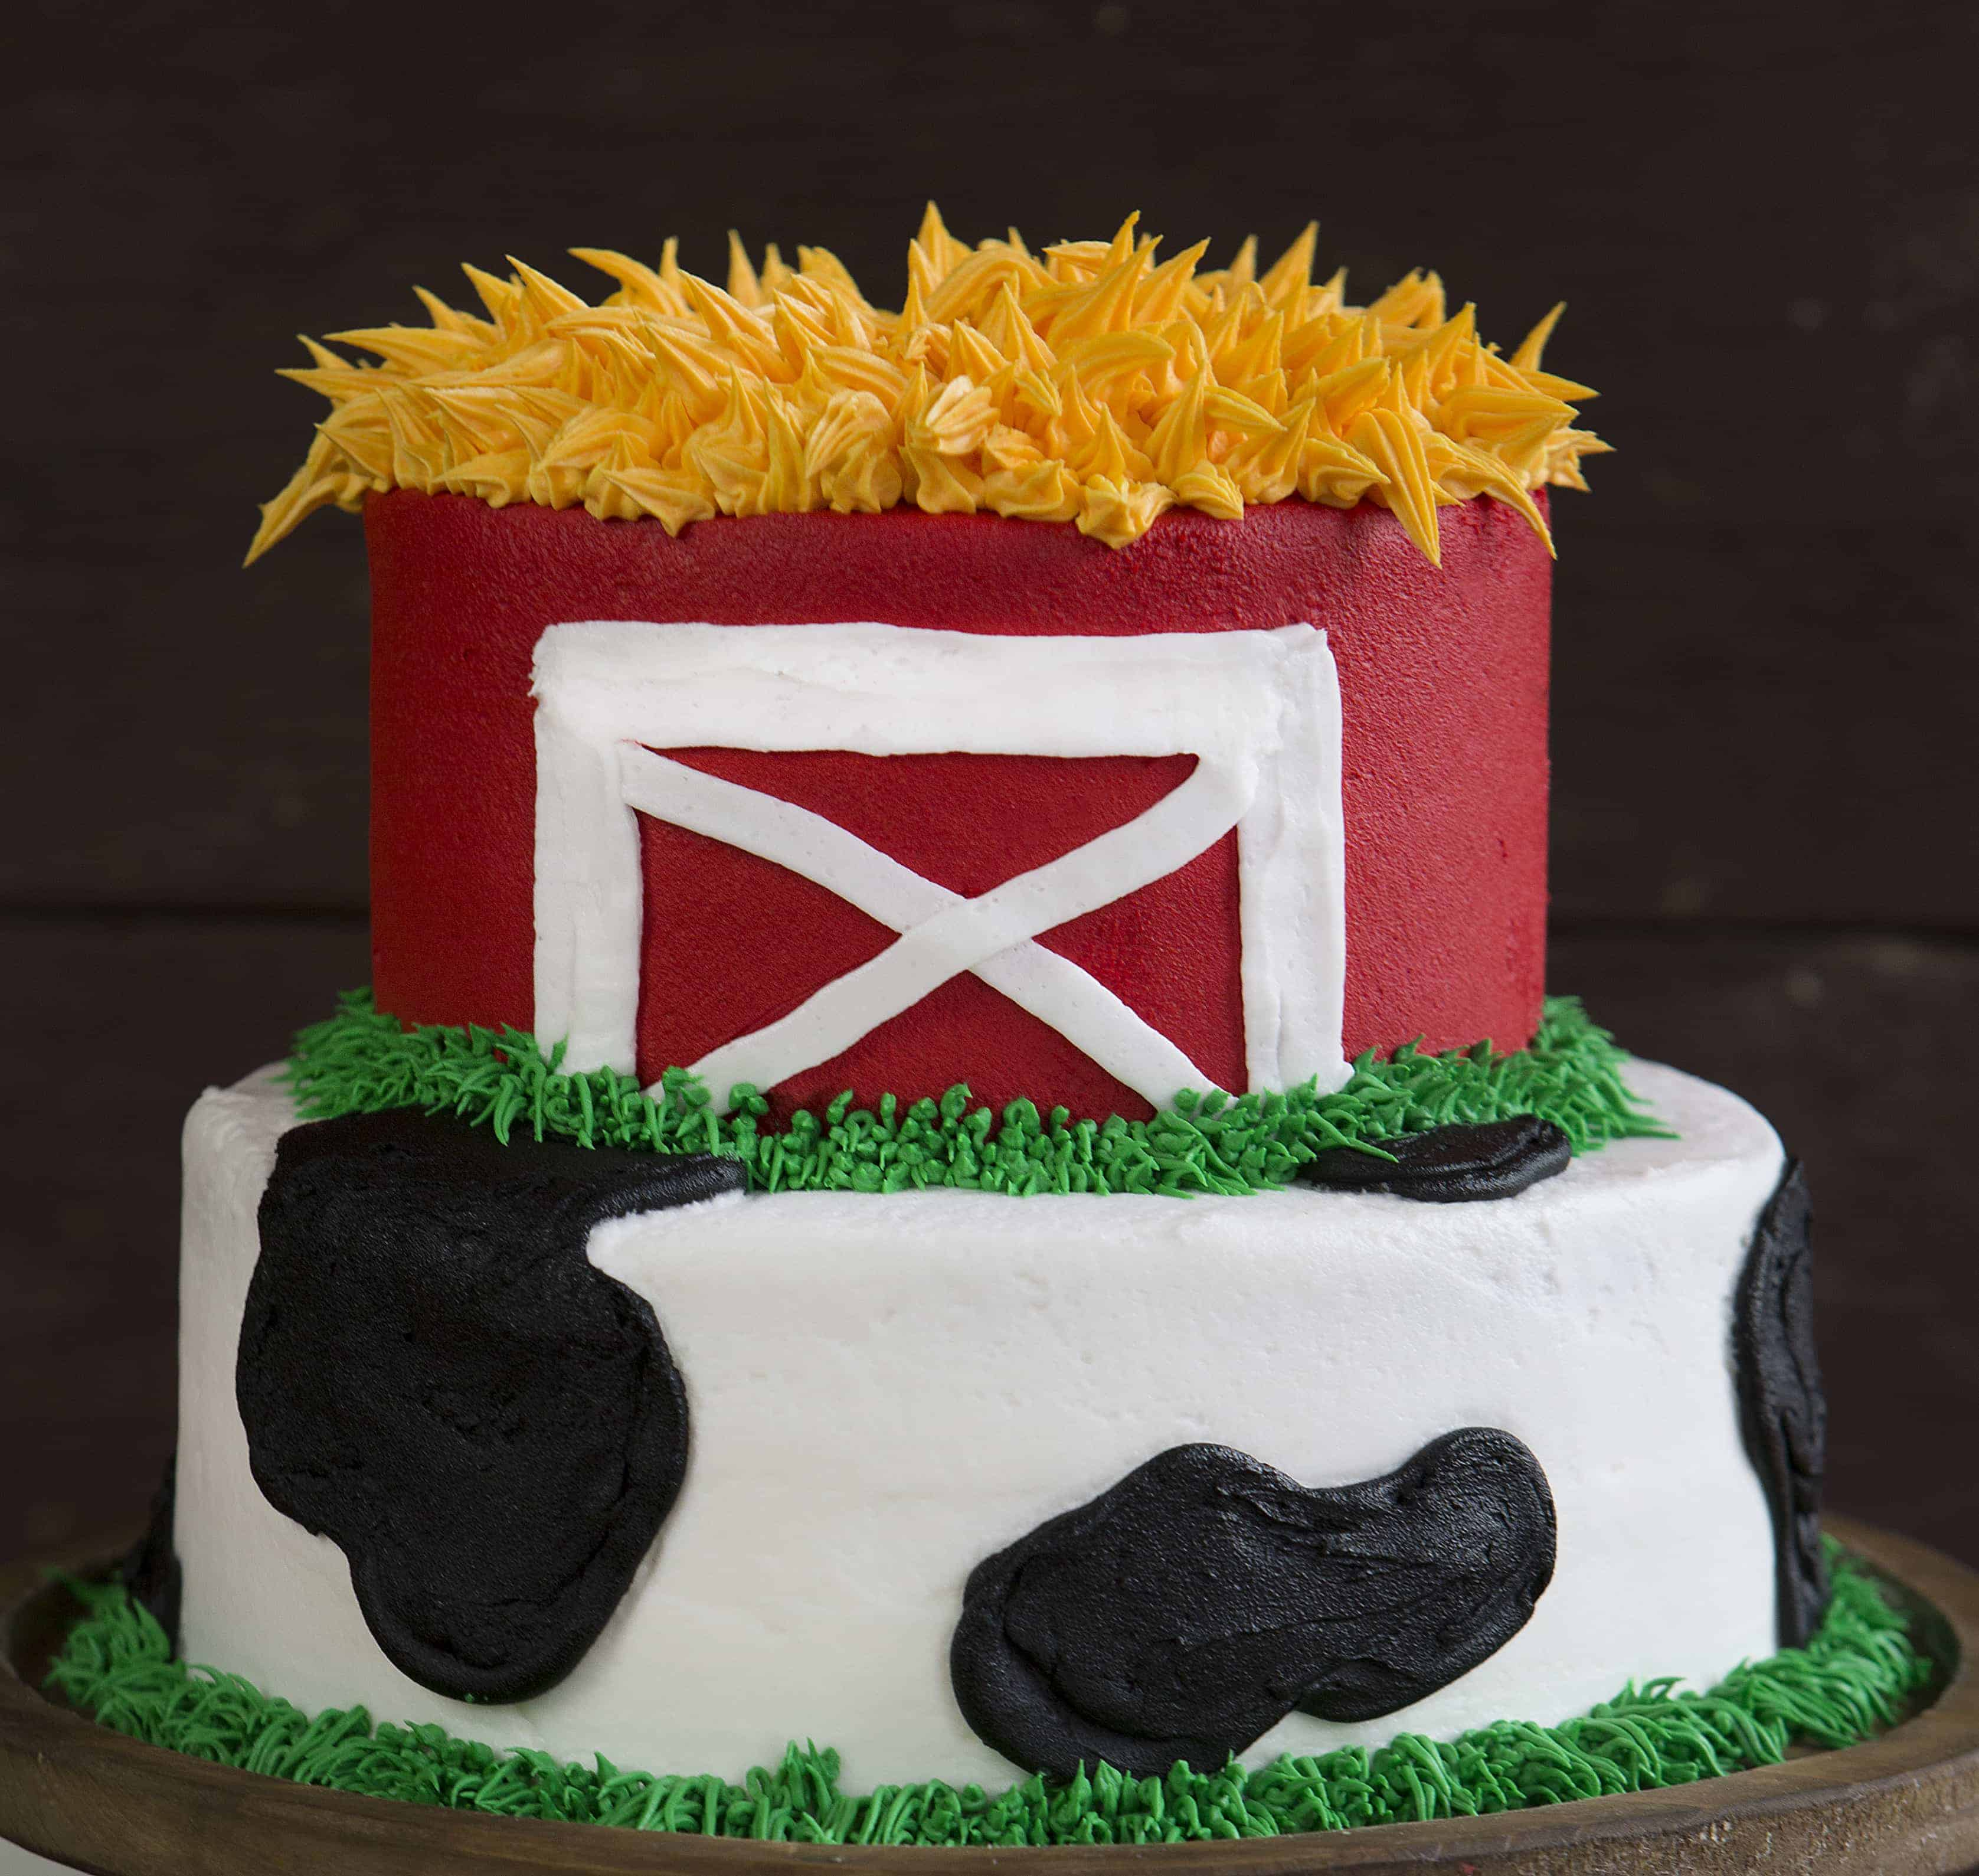 East and FUN Cow & Barn Cake! {VIDEO}